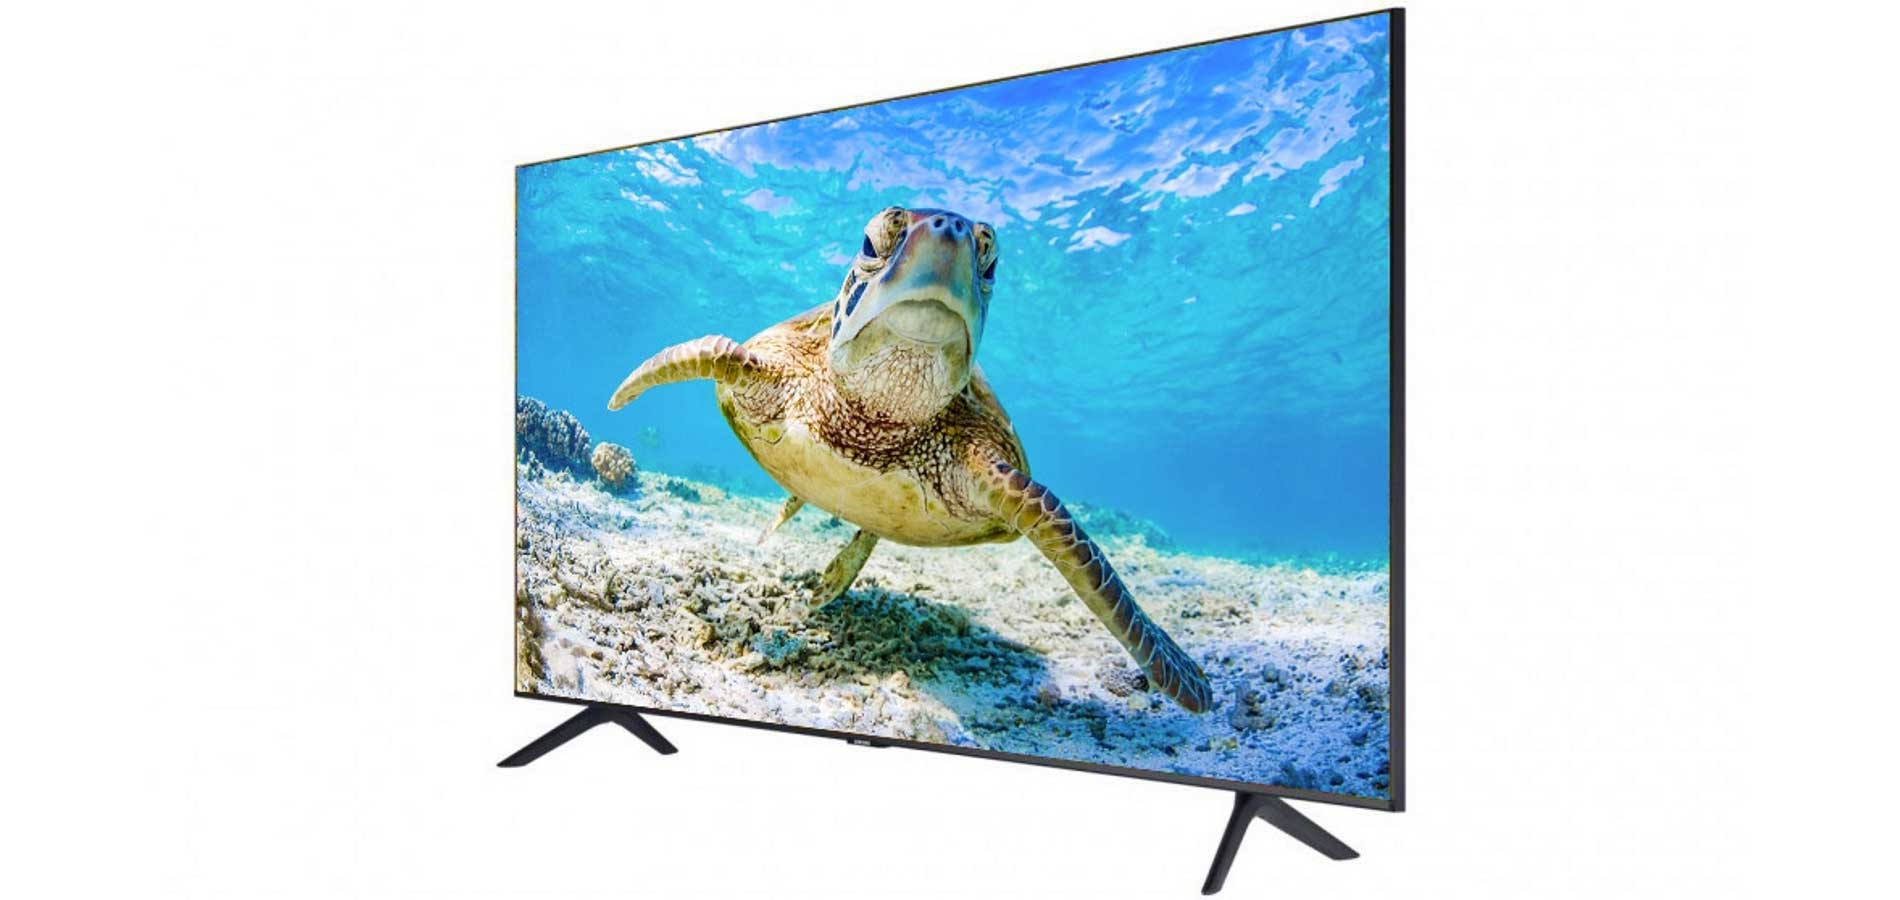 Best Samsung TV Black Friday Deals